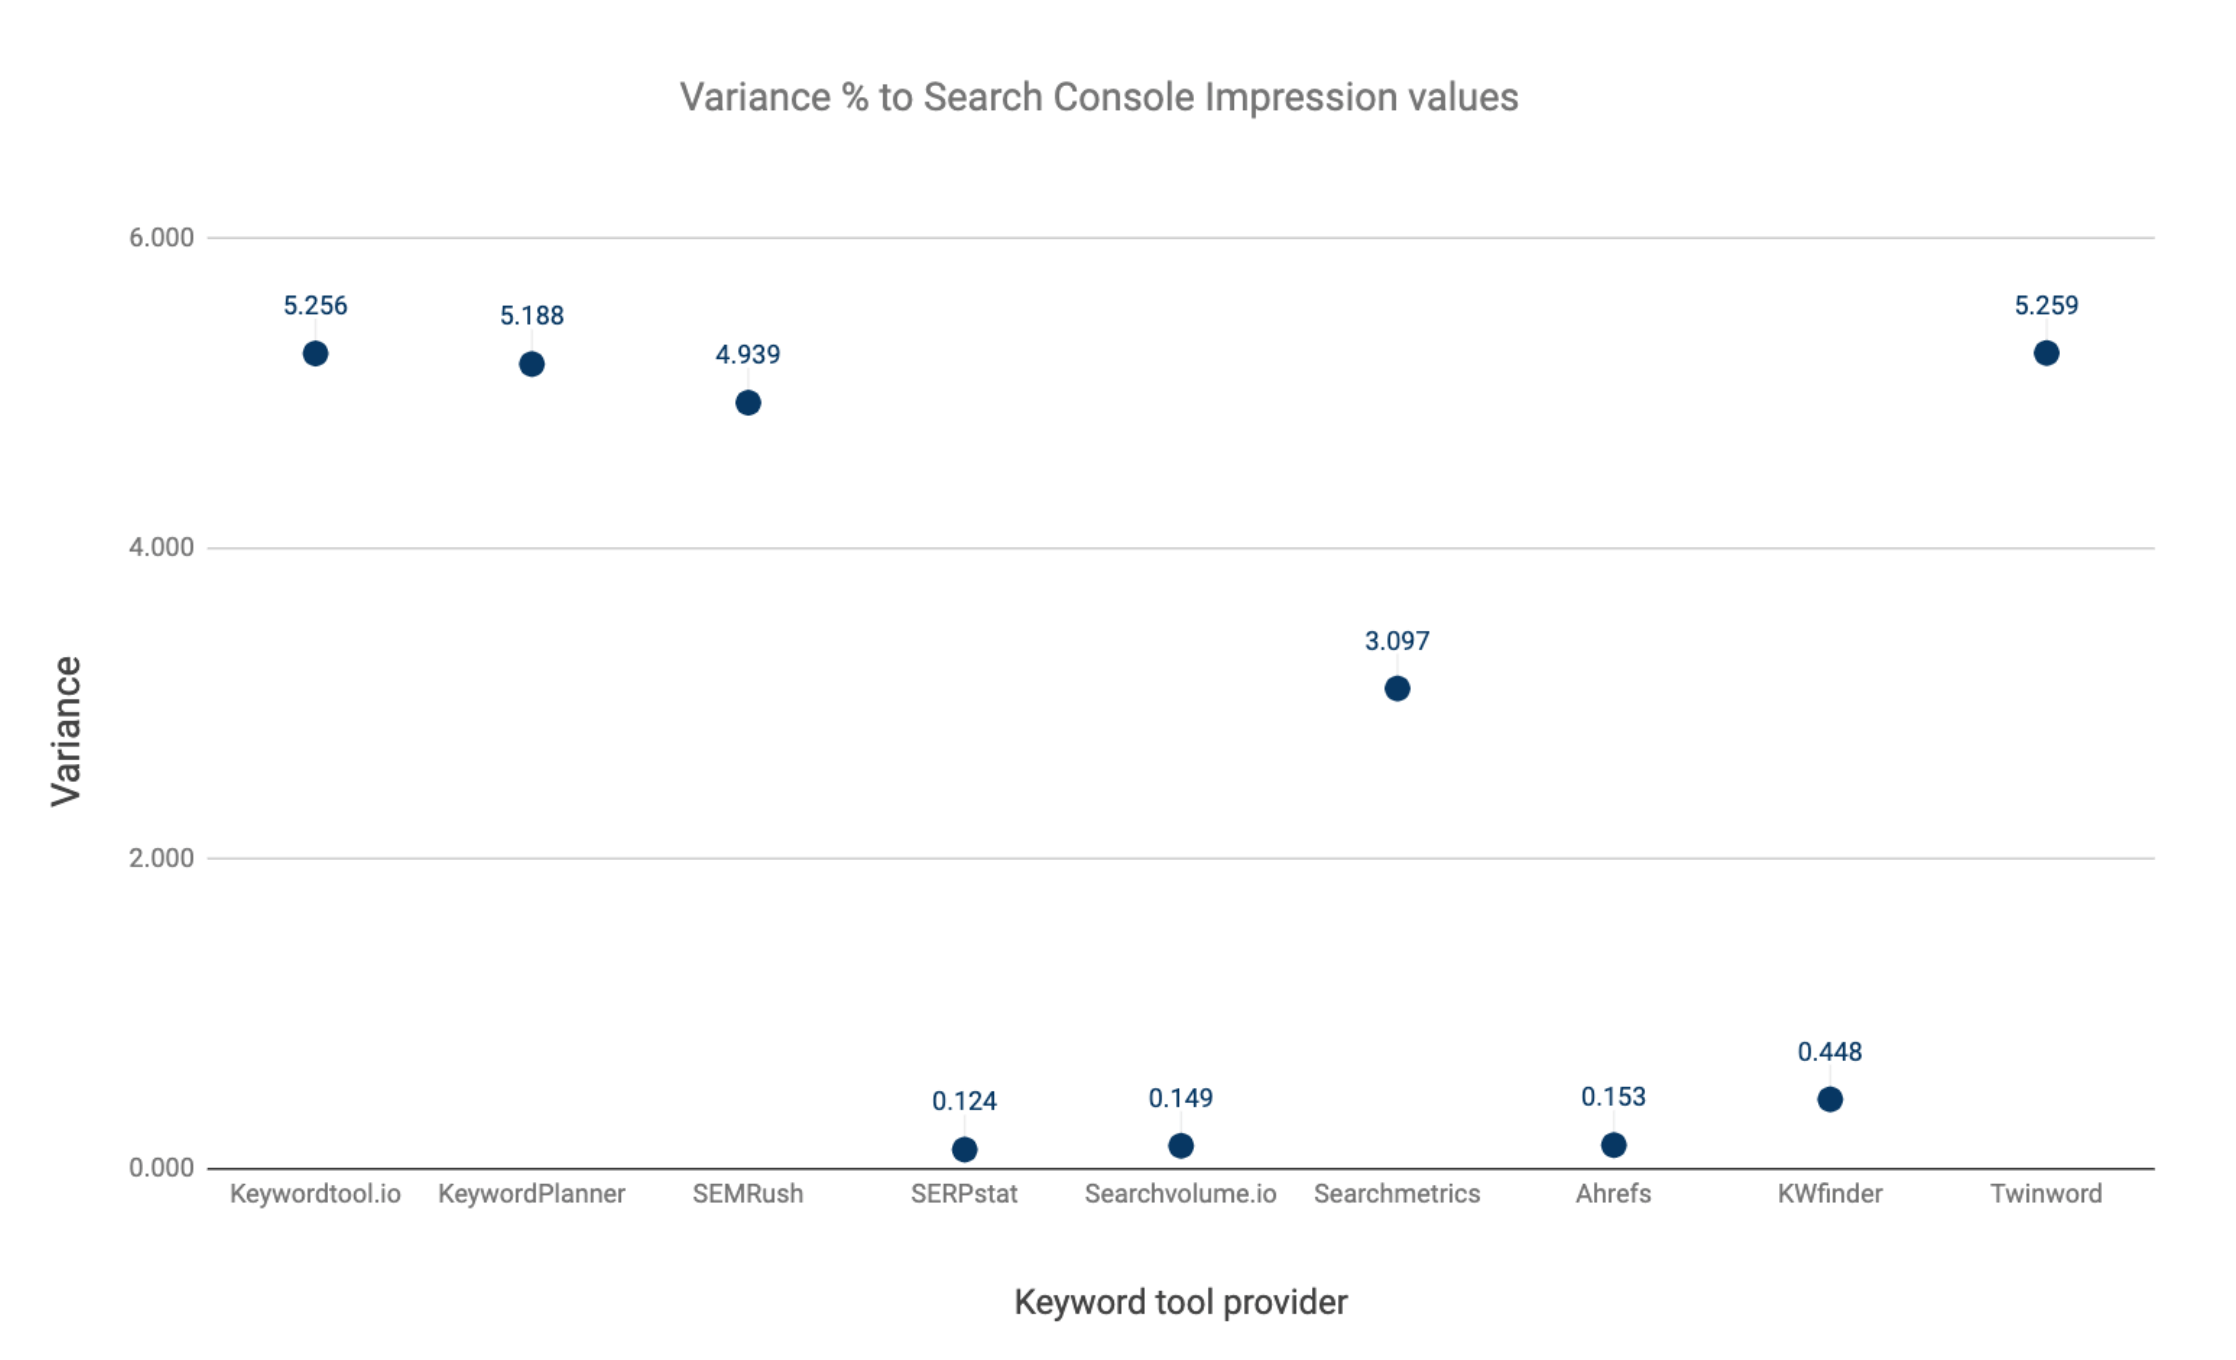 Variance in % of tooling providers deviations from search console values _ SEJ